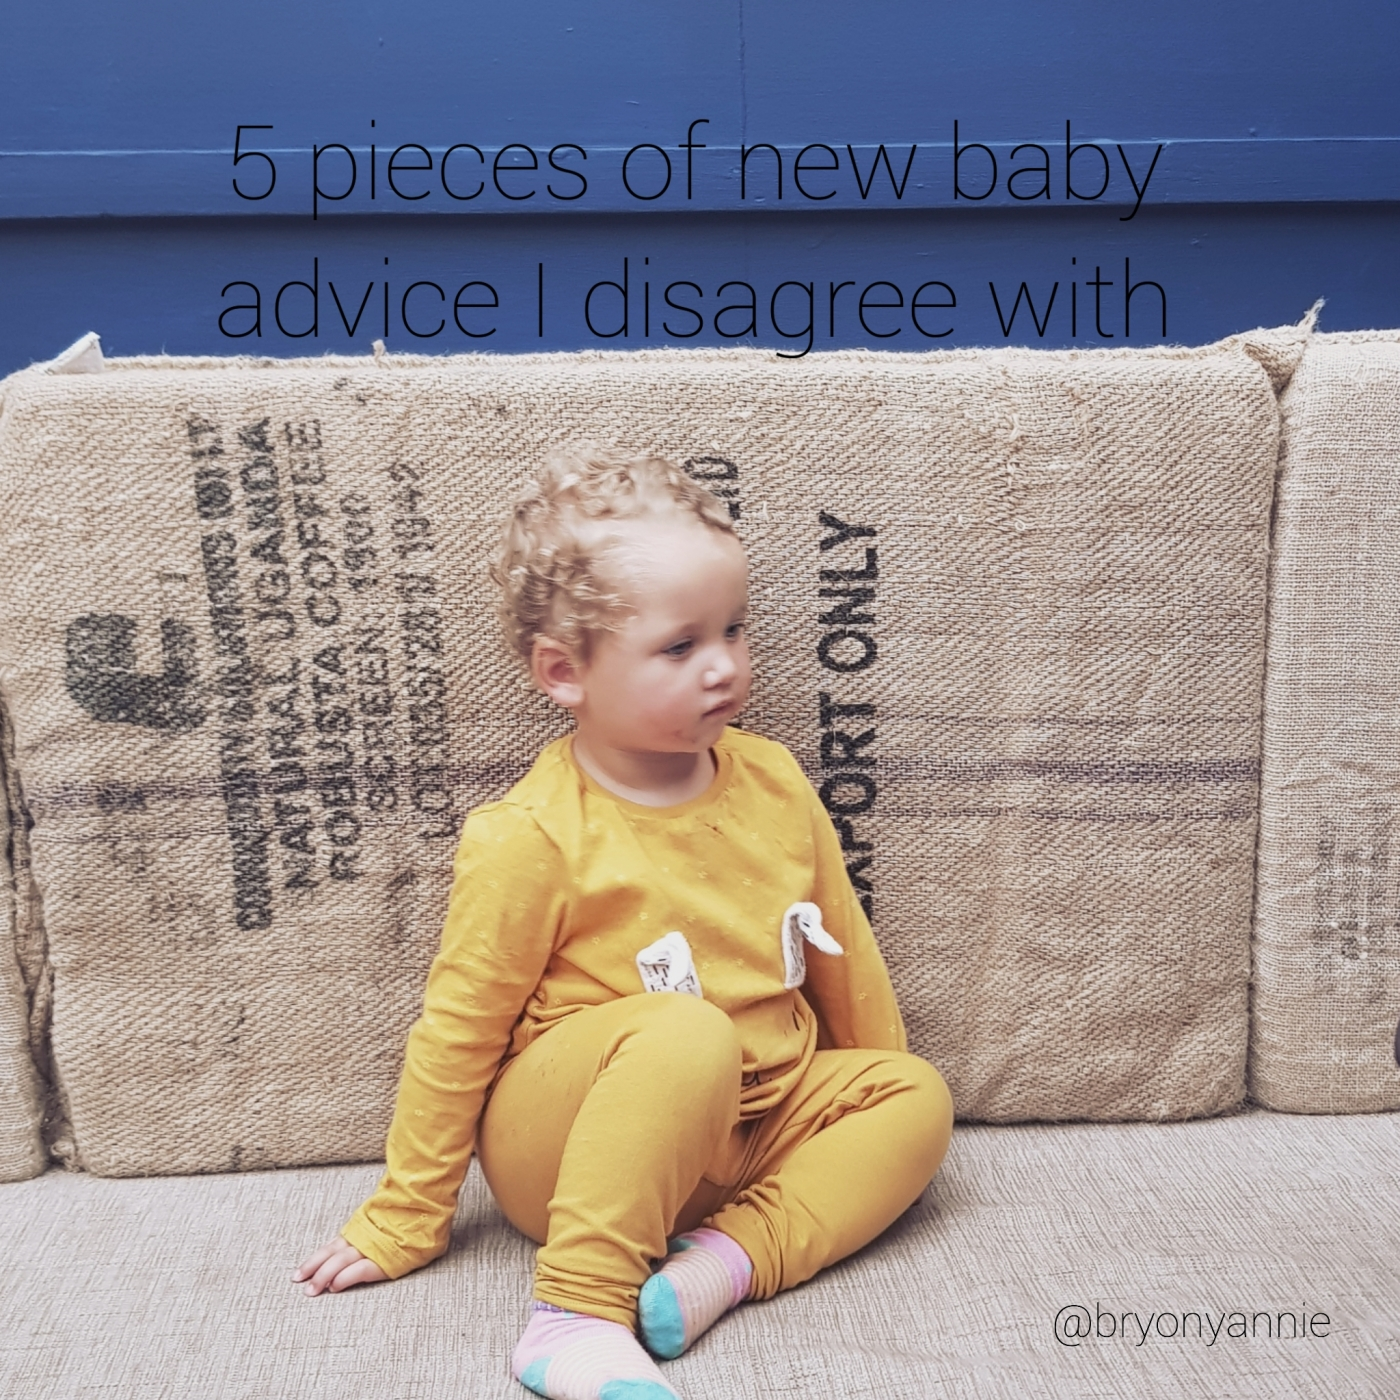 5 pieces of baby advice I disagree with